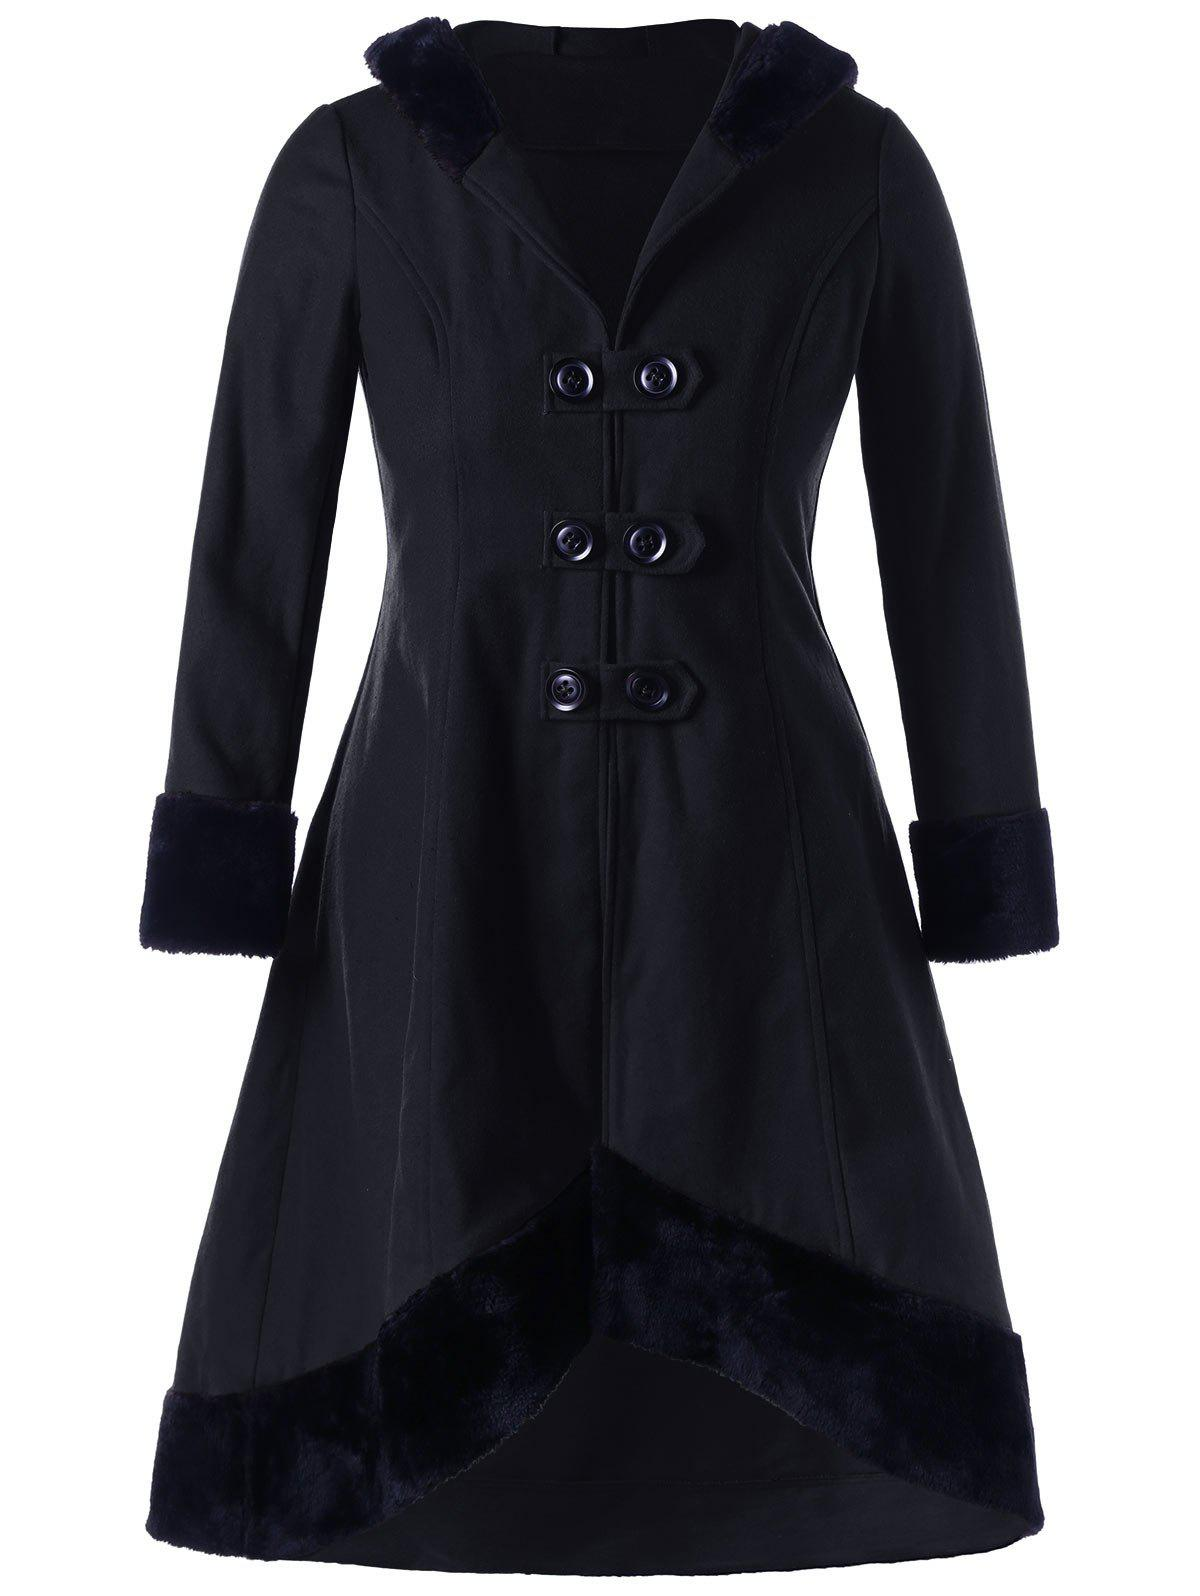 Plus Size Lace Up Hooded Coat - BLACK 5XL